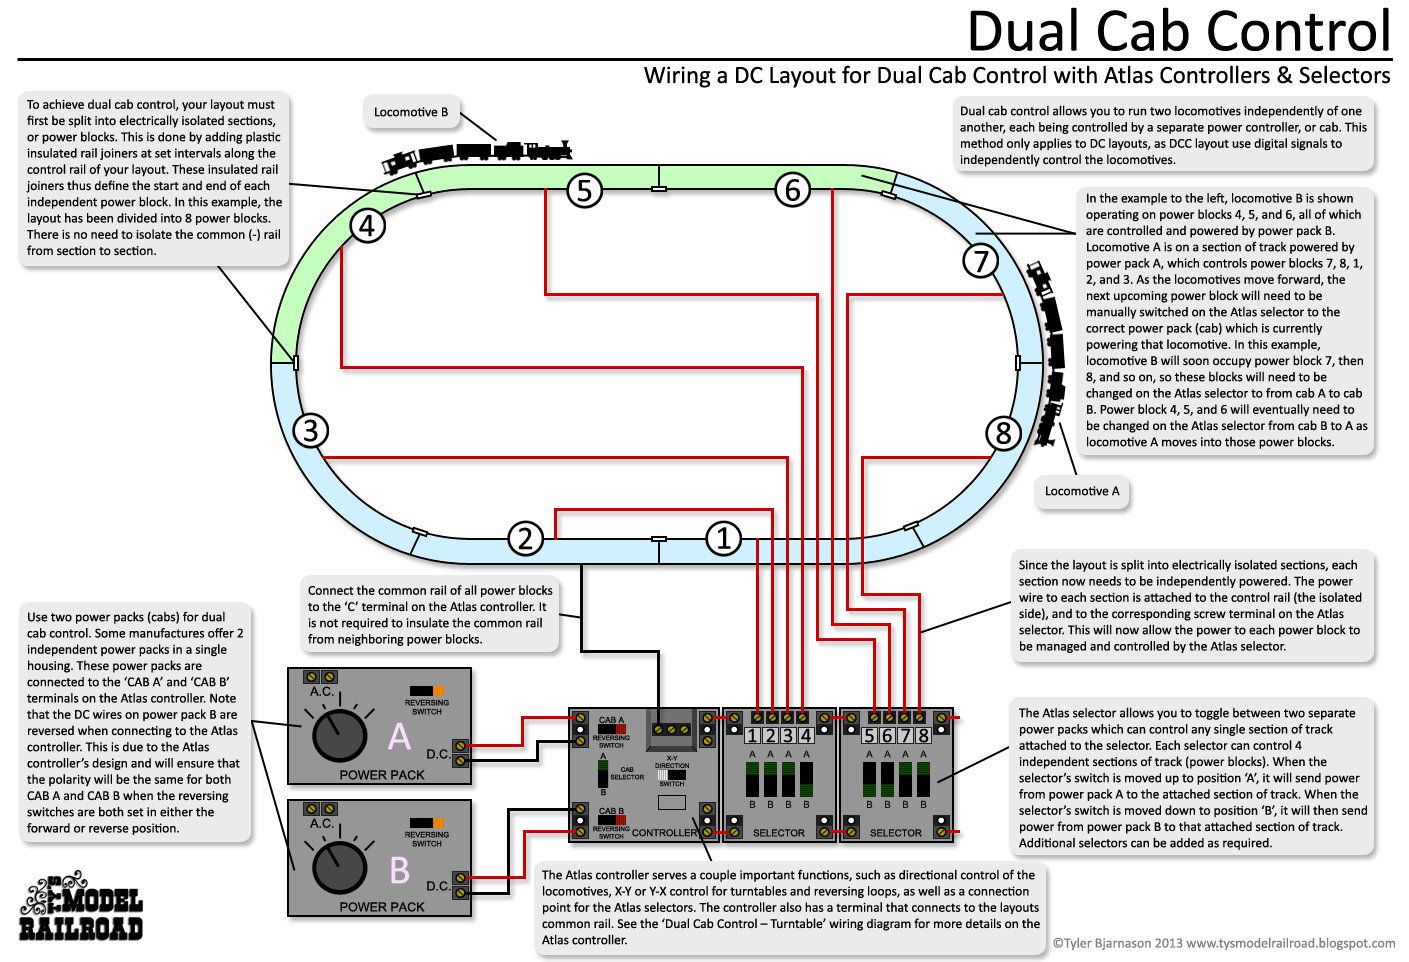 ty s model railroad wiring diagrams rh tysmodelrailroad blogspot com Atlas Controller Wiring Diagram Model Train Wiring Diagrams